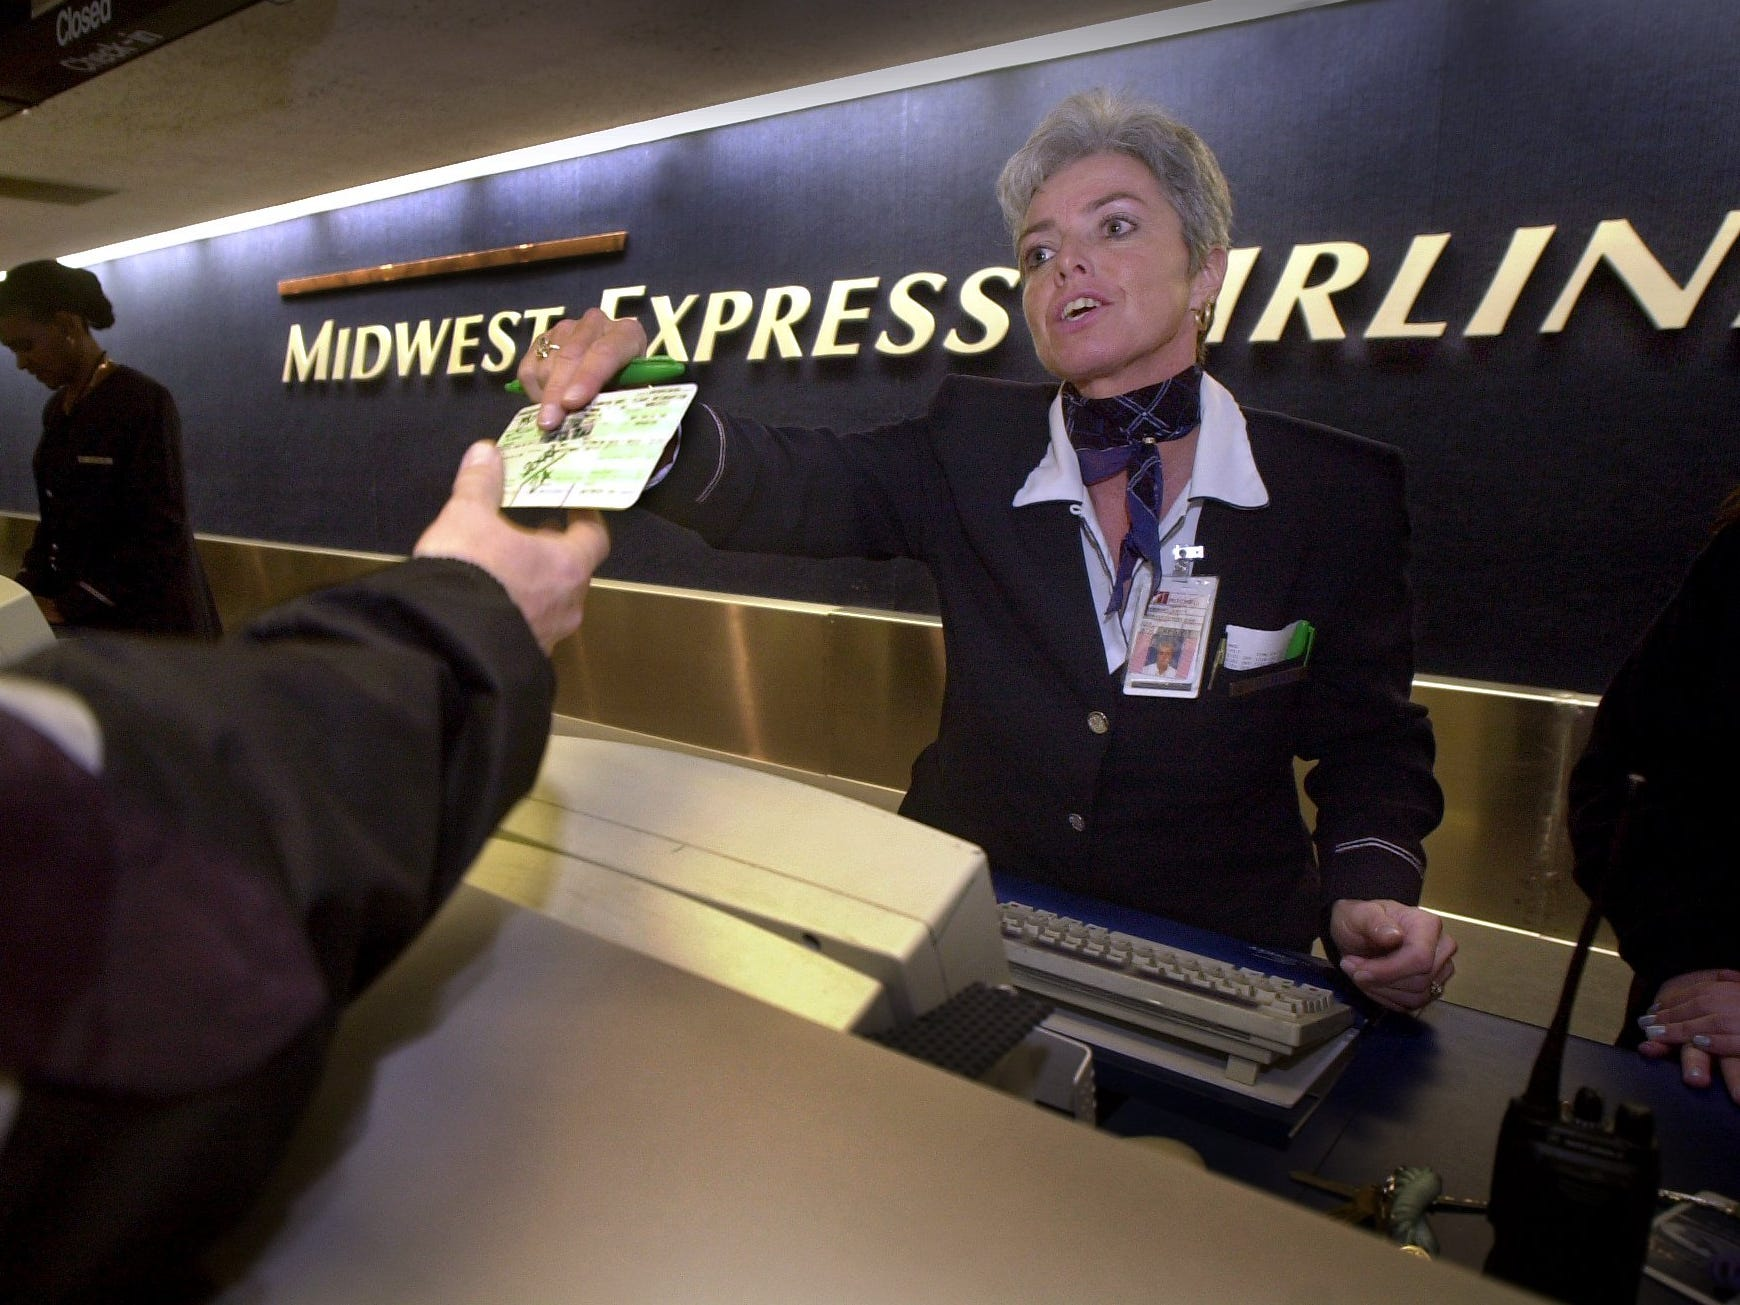 Deb Jewett, a customer service supervisor for Midwest Express Airlines, works with customers at Mitchell International Airport. Midwest Express Airlines warned investors  that it would post a loss for the fourth quarter. The loss is only the airline's second since it became publicly-traded in 1995.